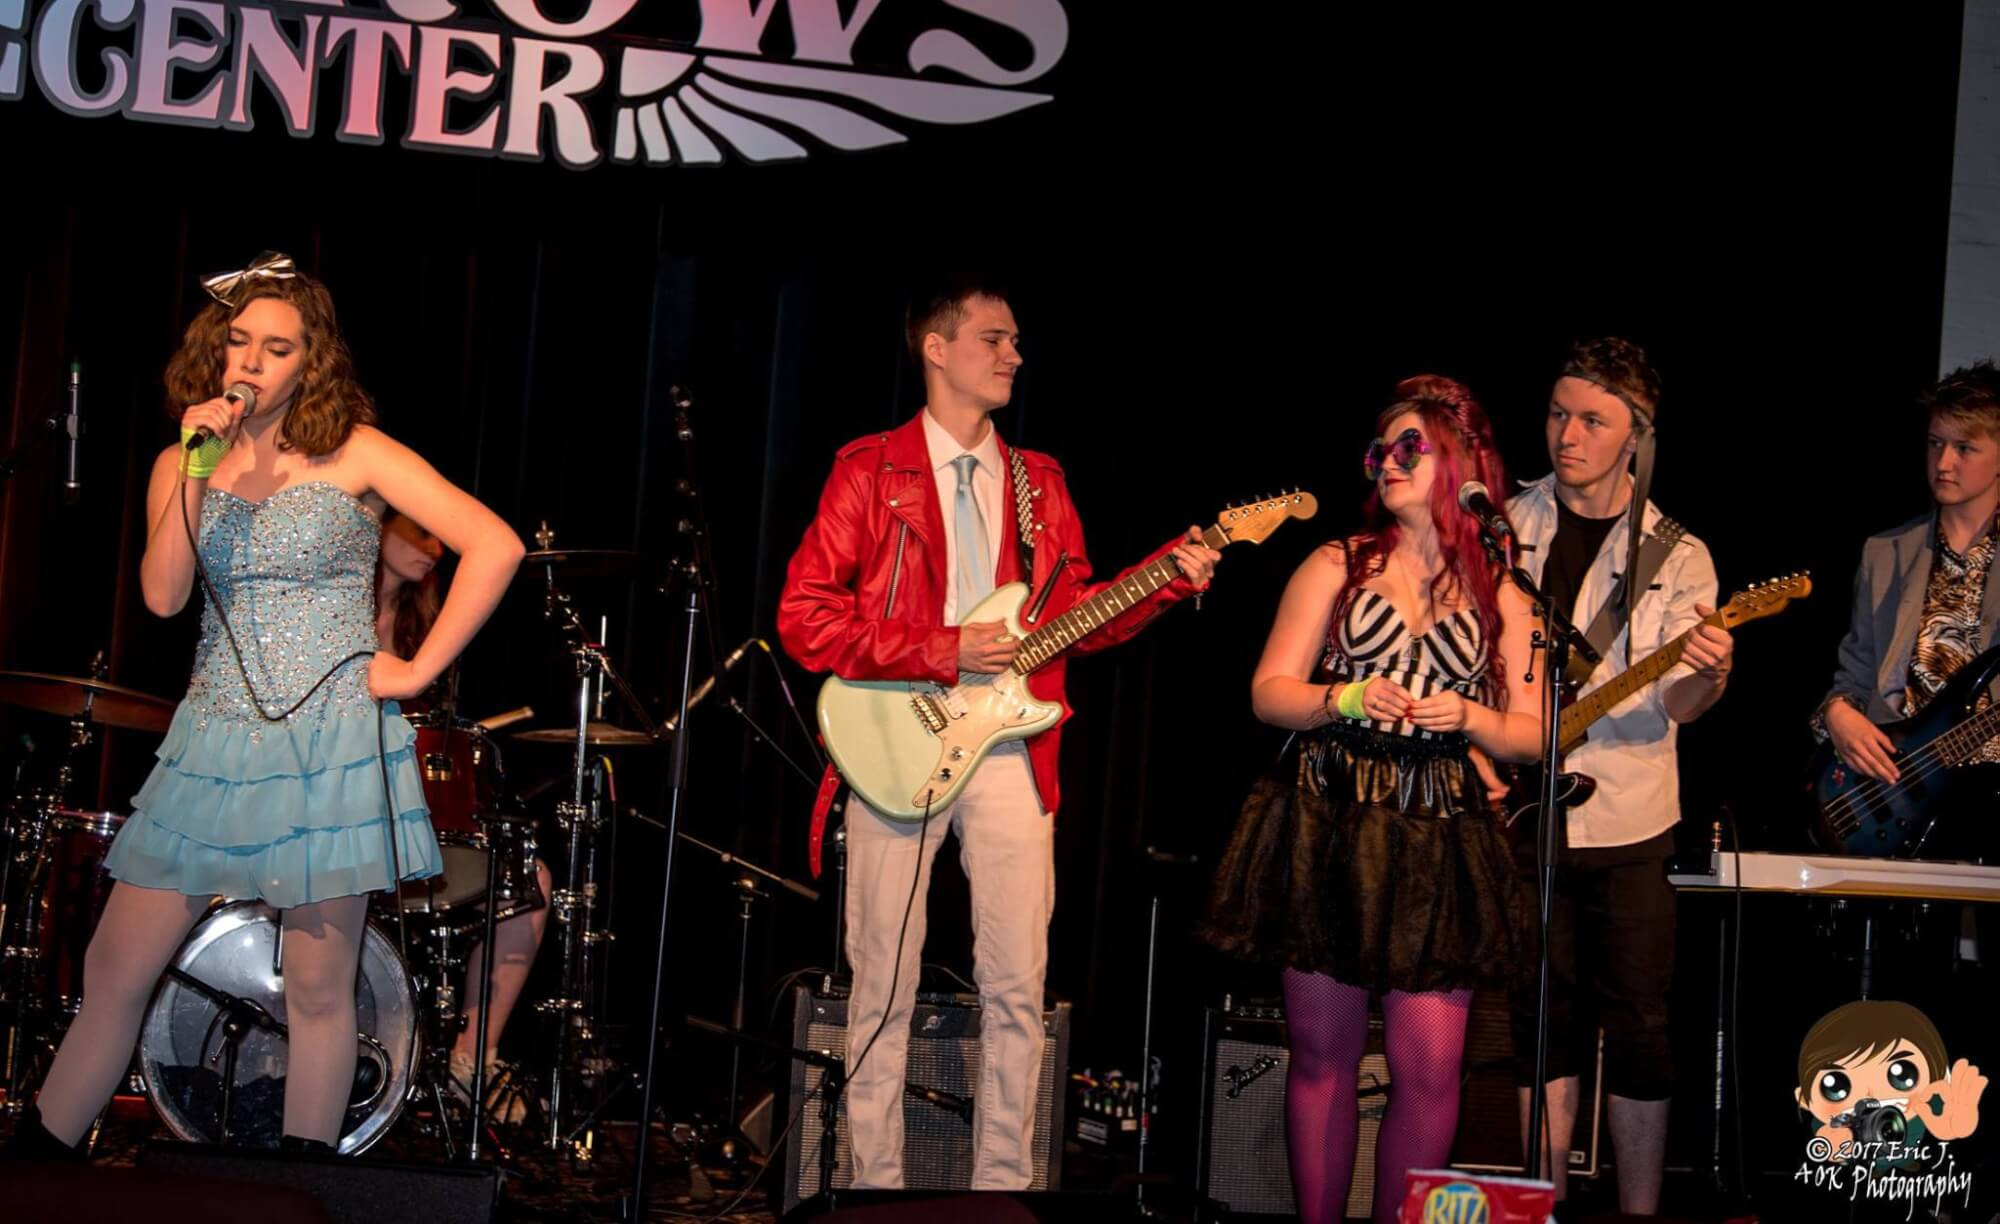 Our students performing a B-52's set at The Narrows Center in Fall River.